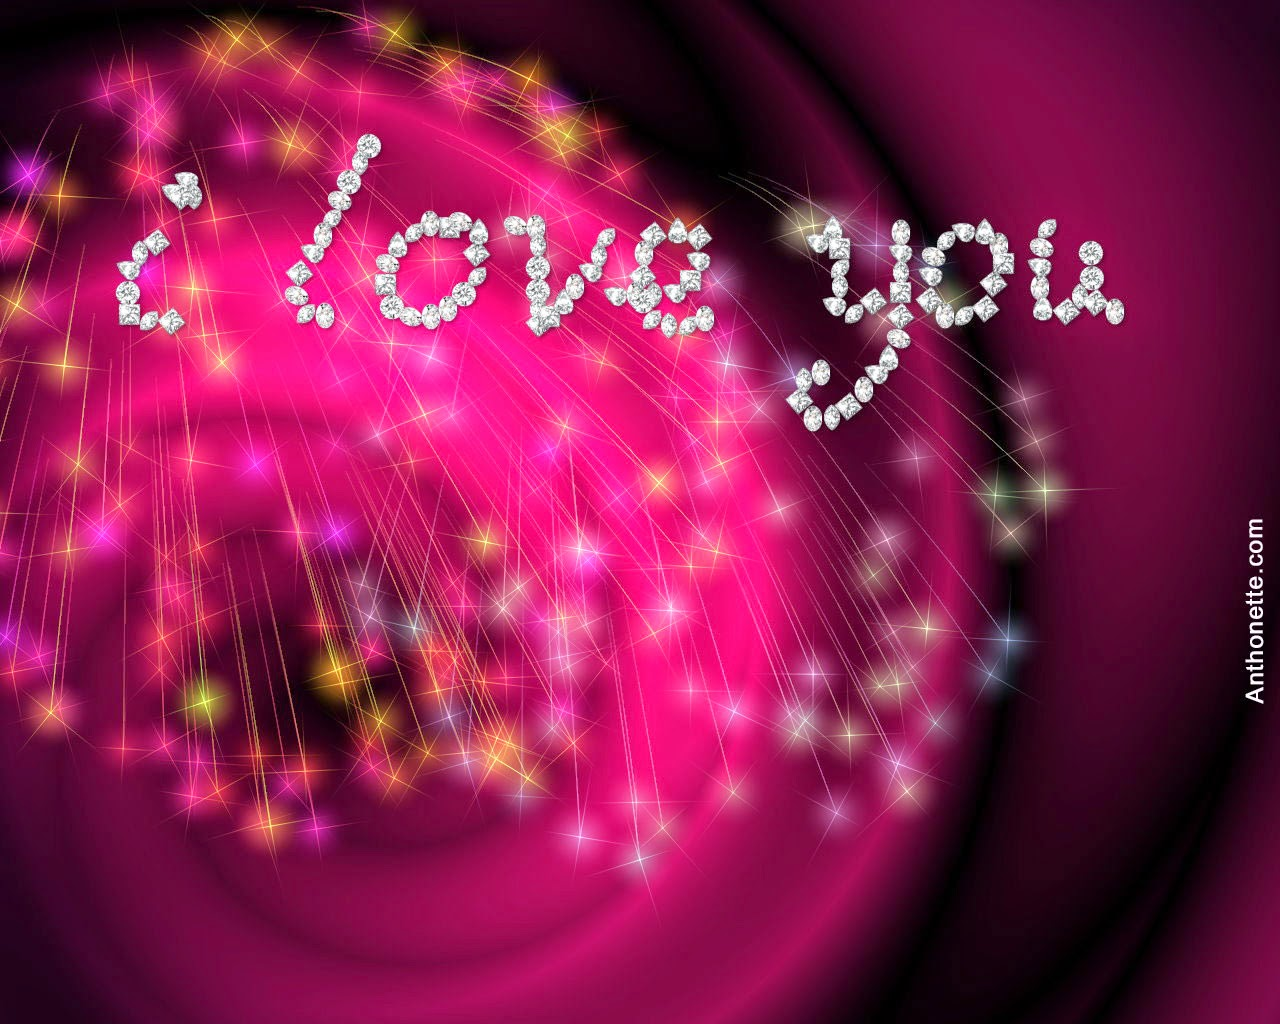 I love you photo effects Funny photo frames, online photo effects, filters